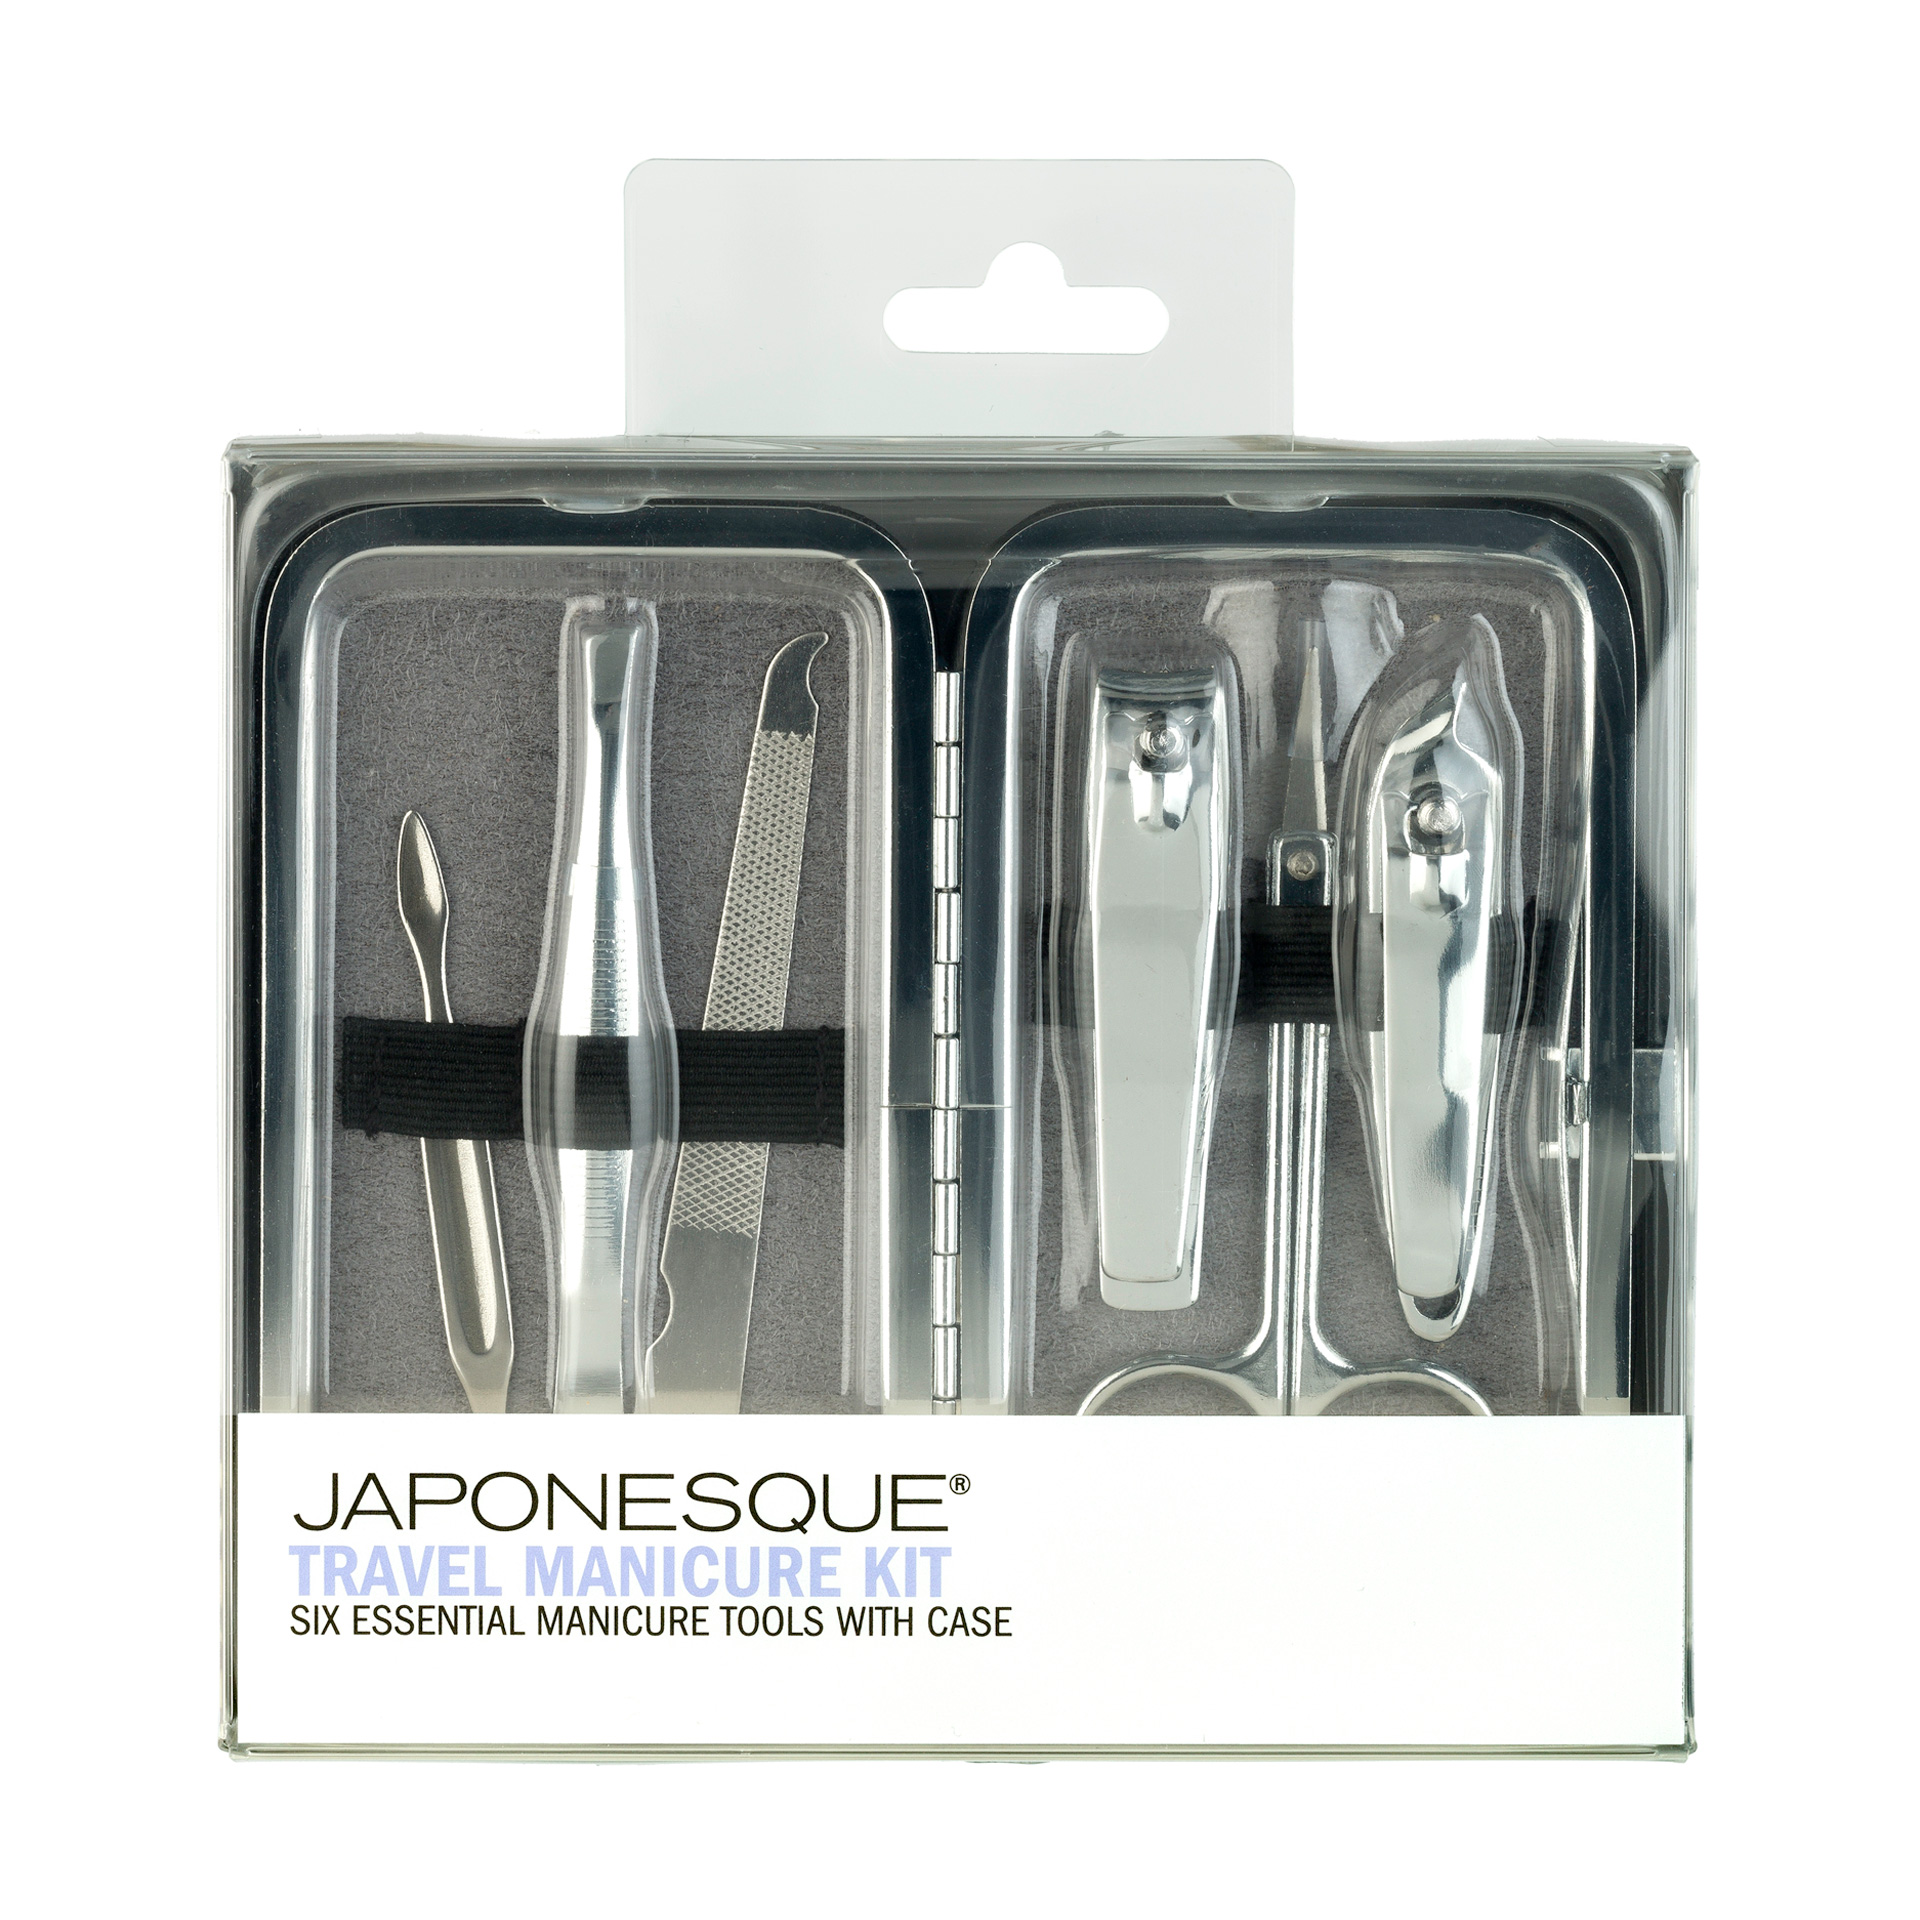 Japonesque Travel Manicure Kit